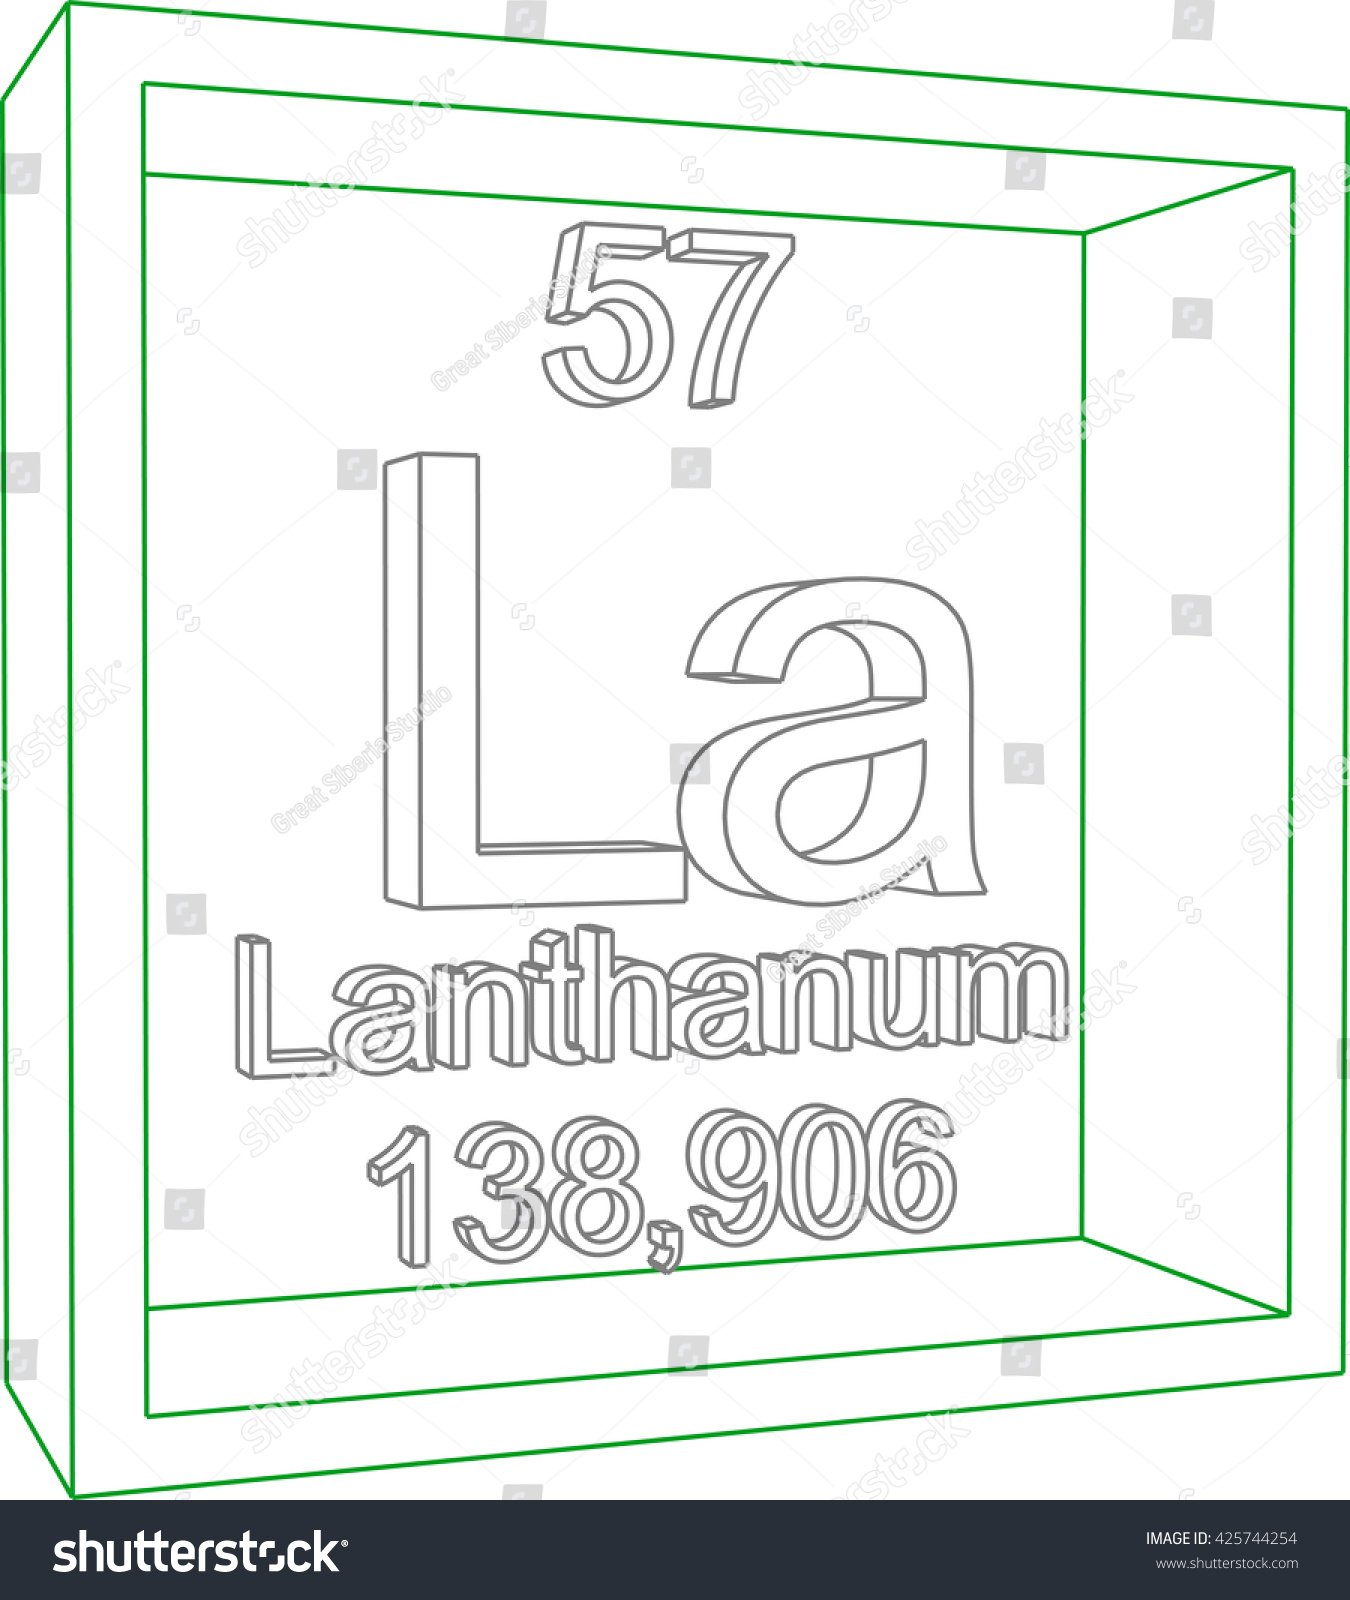 Periodic table elements lanthanum stock vector 425744254 periodic table of elements lanthanum gamestrikefo Gallery